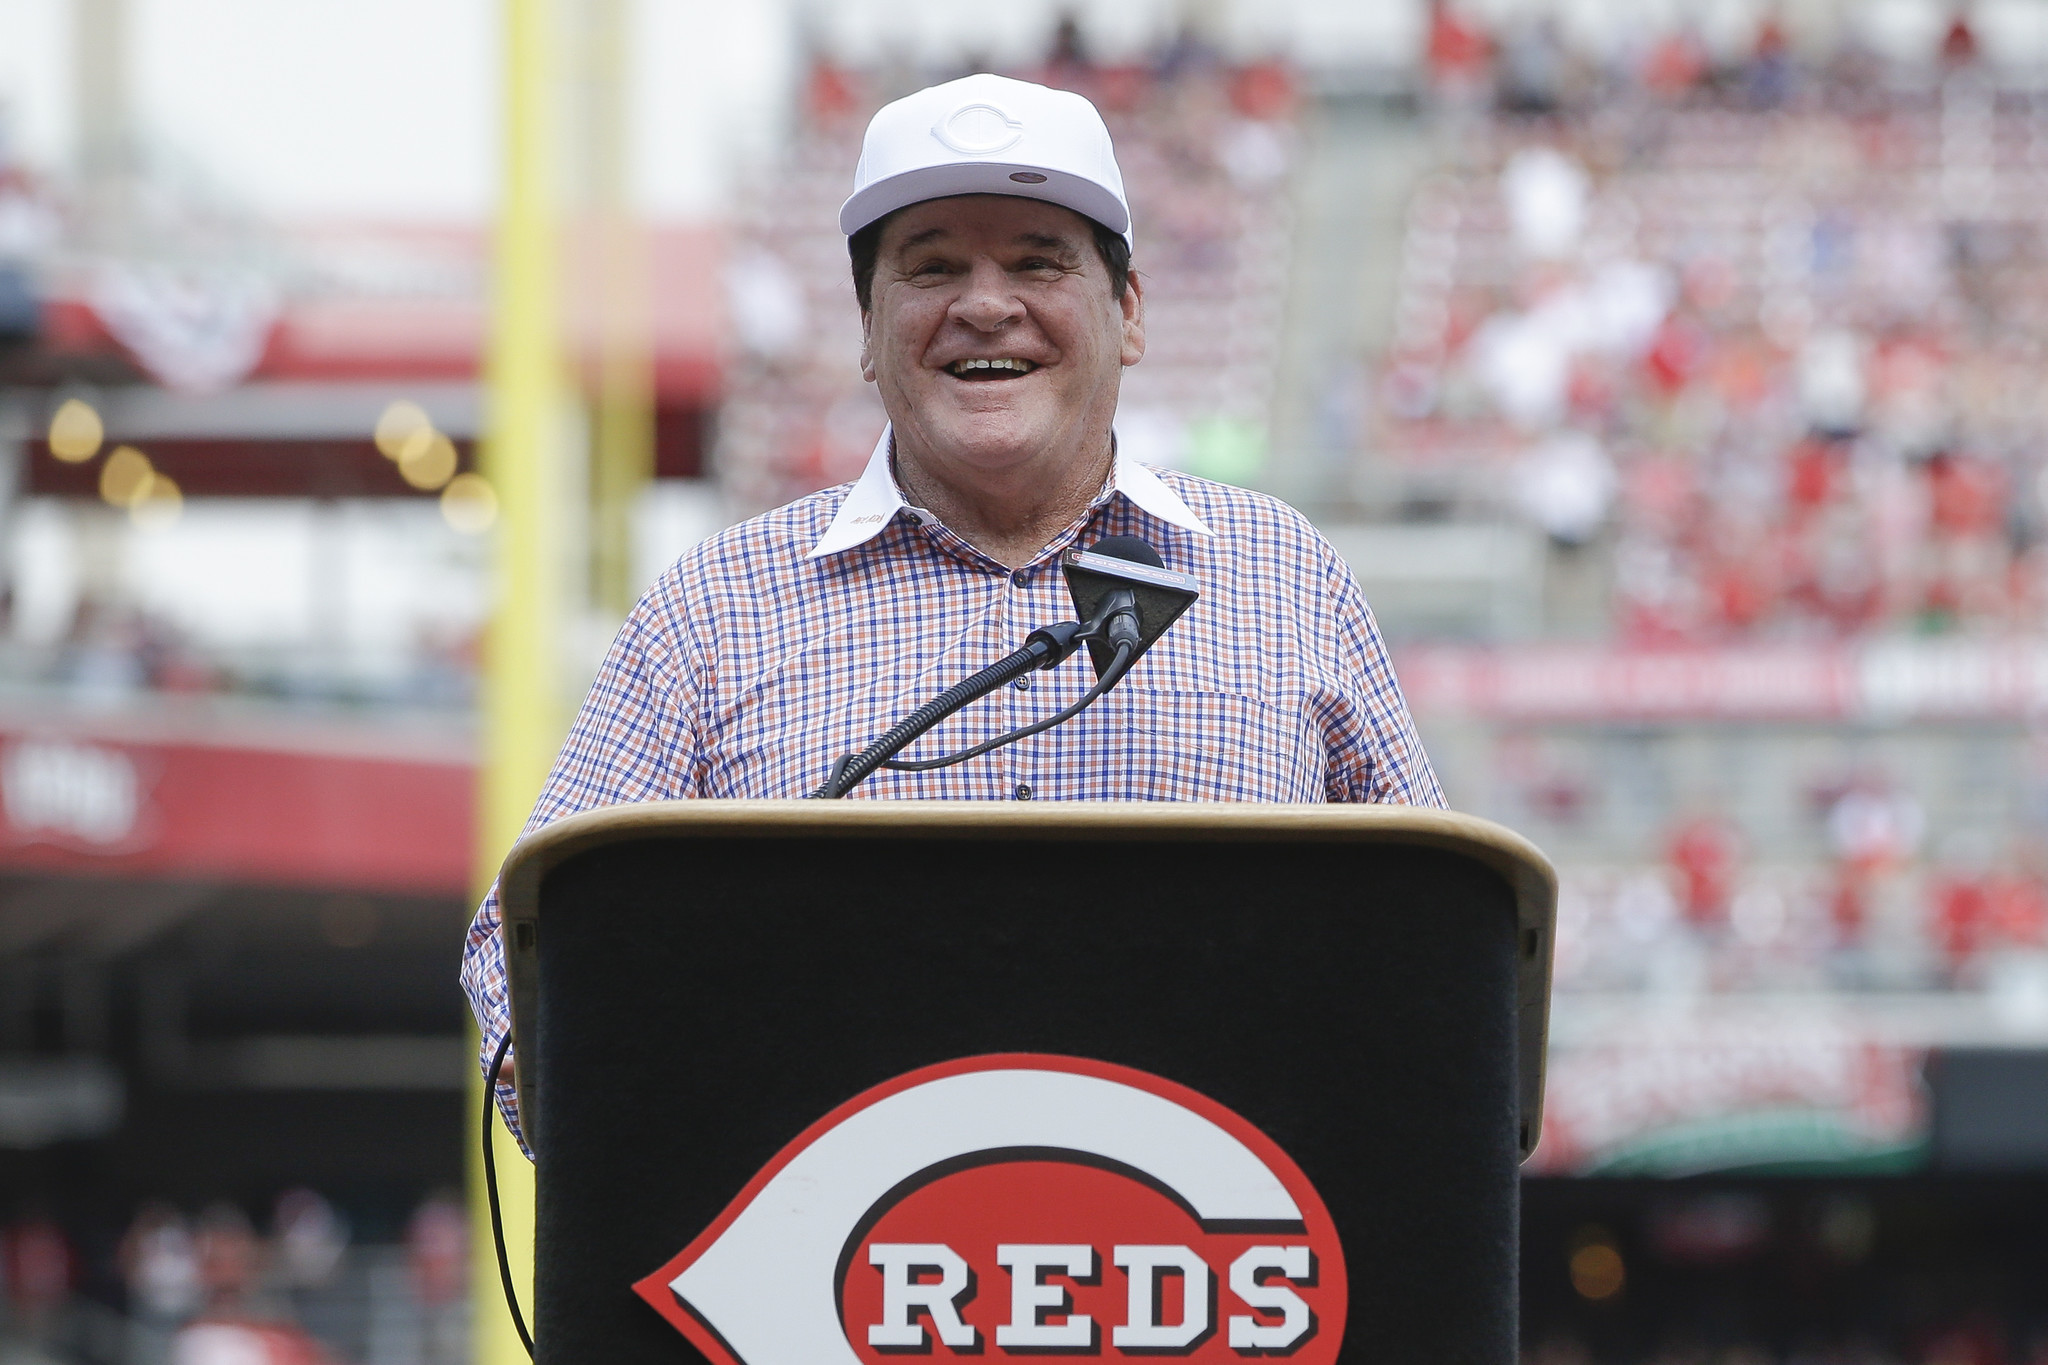 La-sp-pete-rose-hall-of-fame-20160928-snap